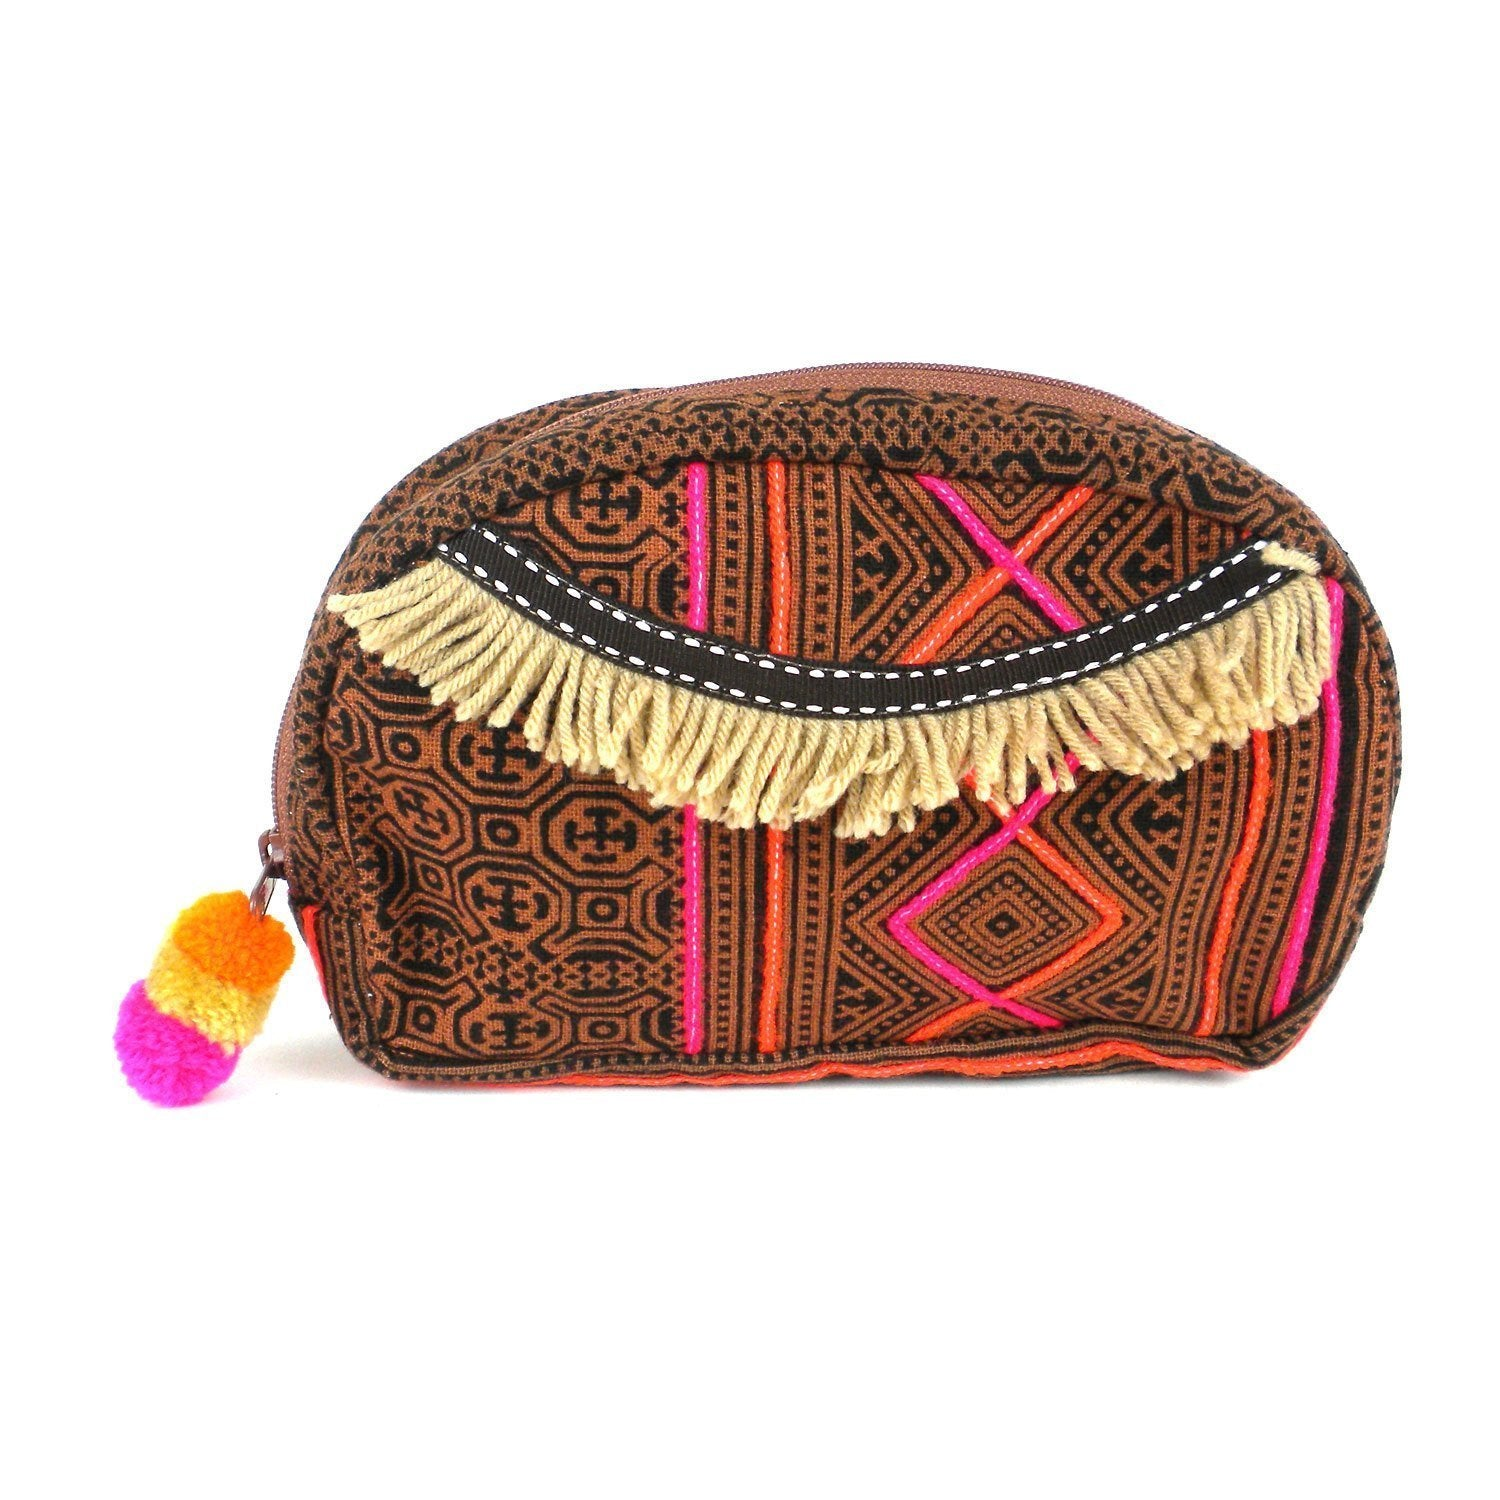 Small Hmong Batik Cosmetic Bag - Earth